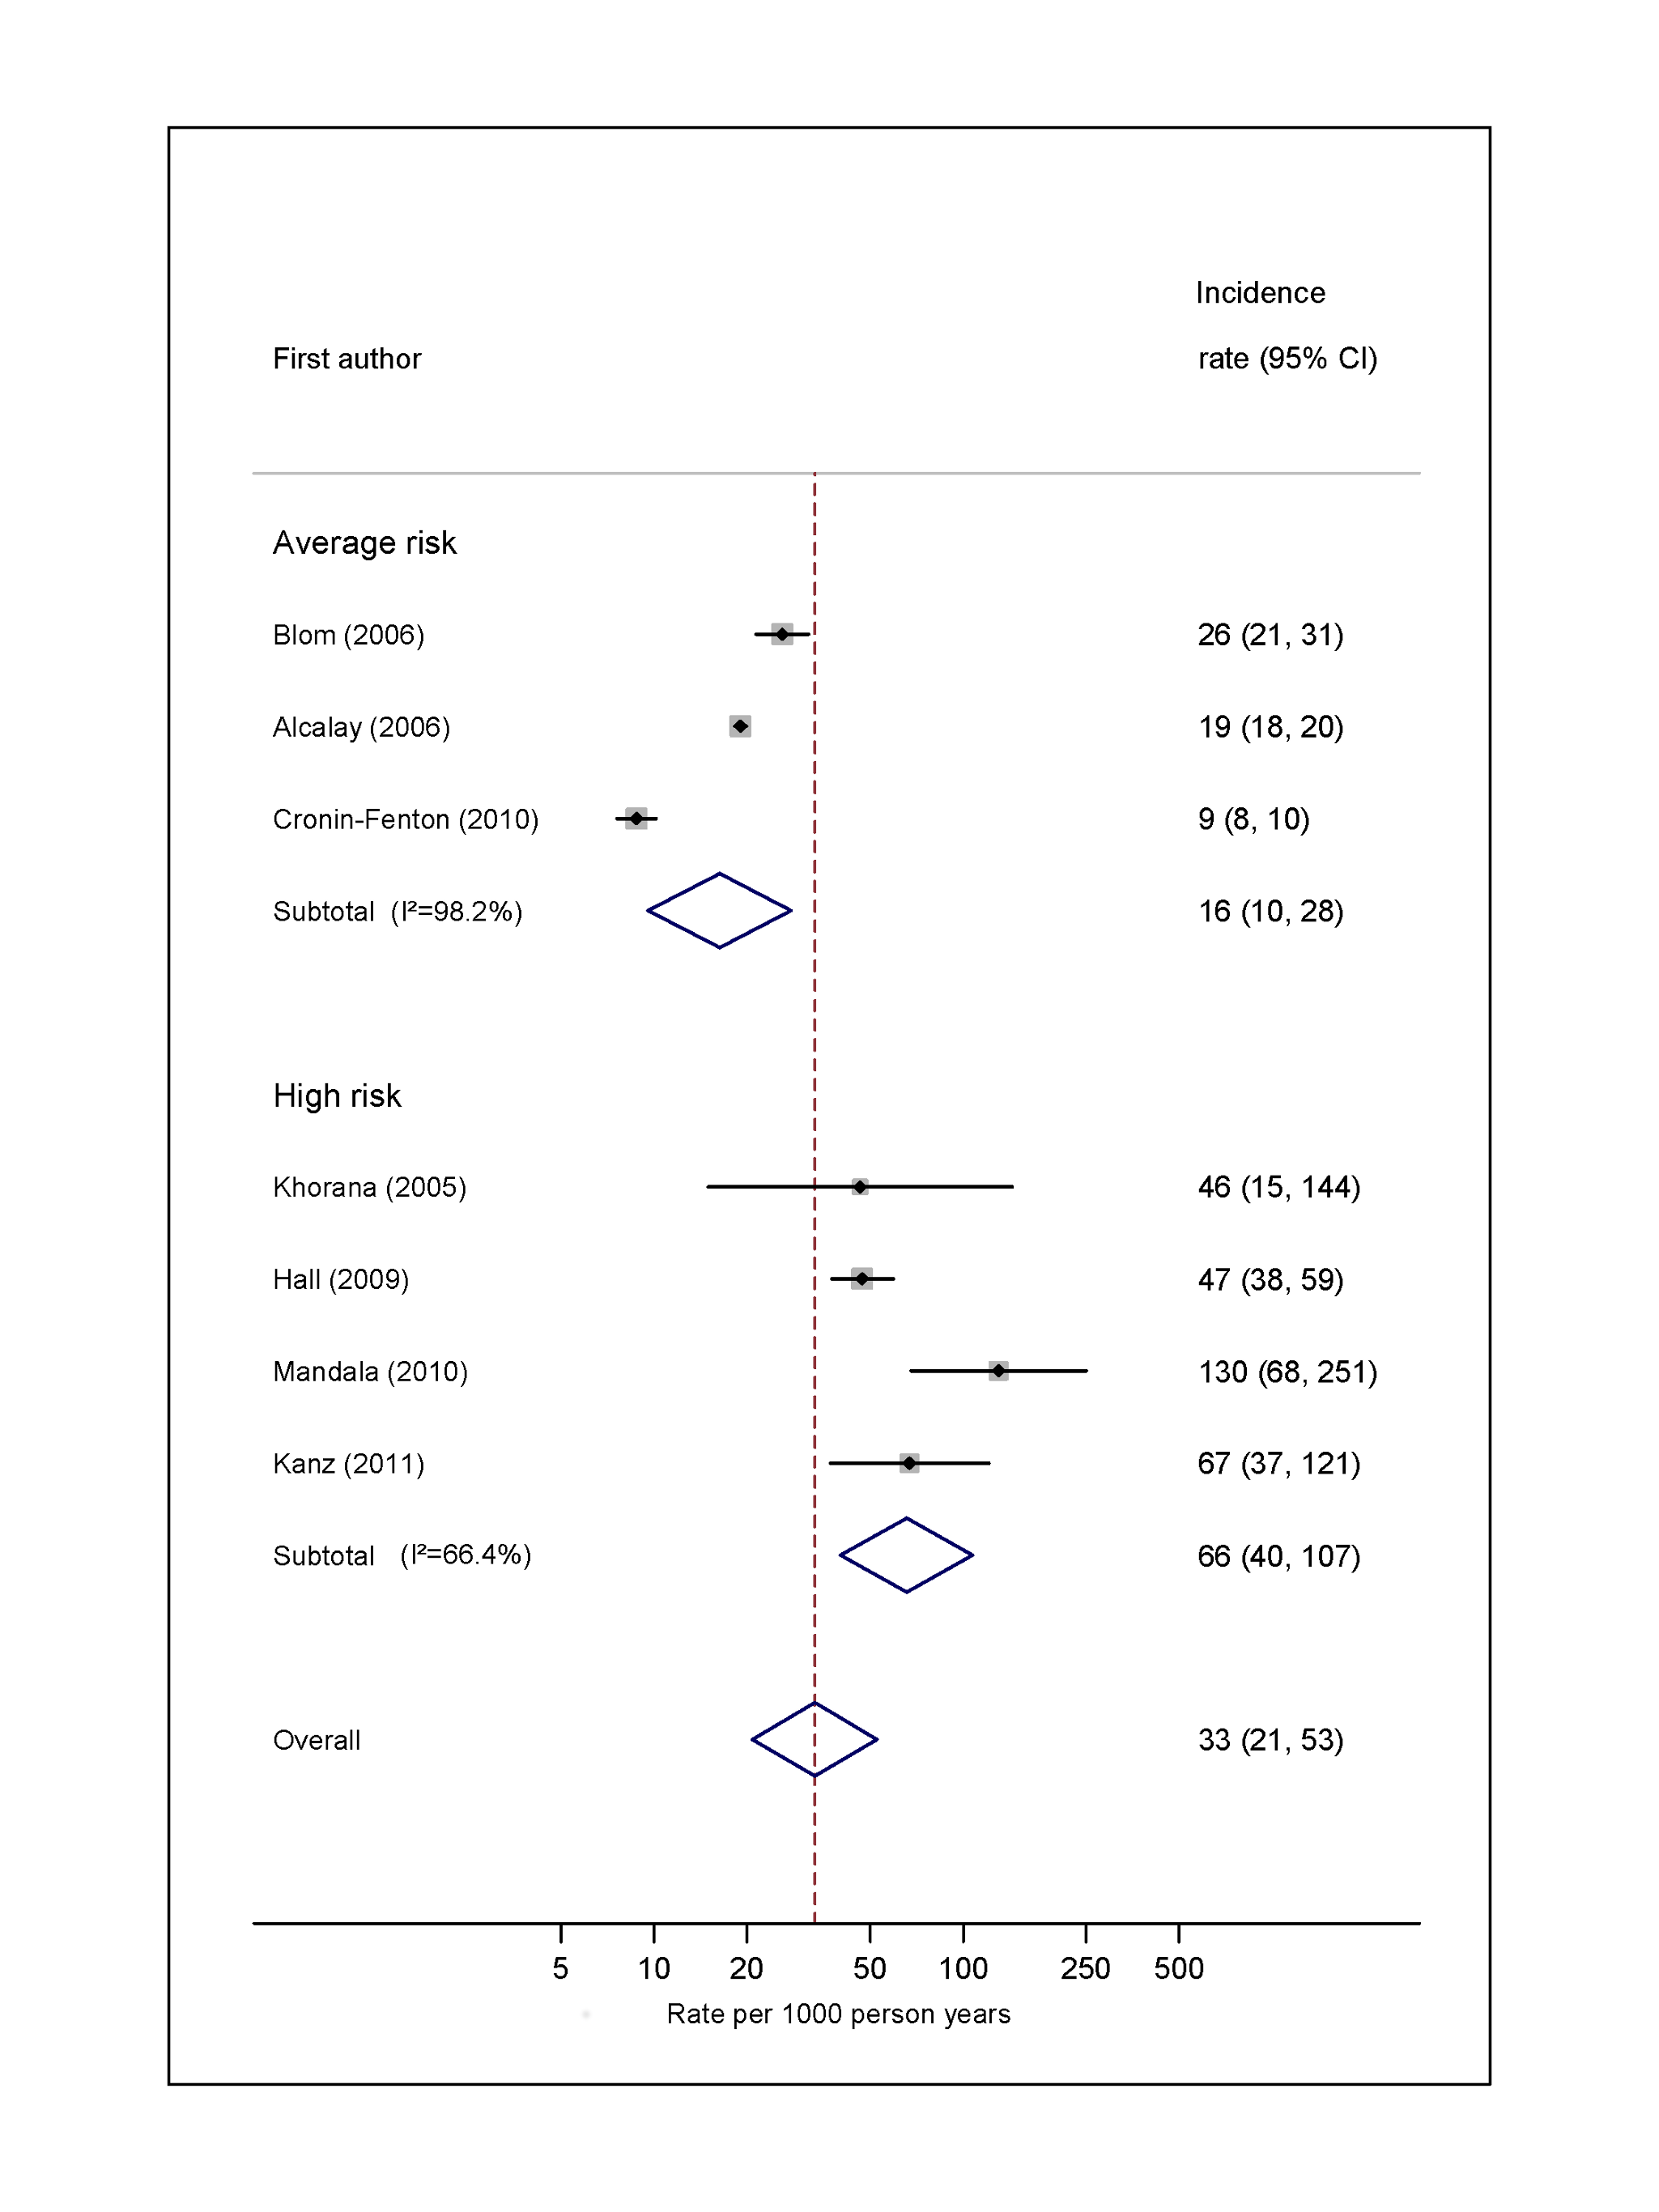 Pooled incidence of venous thromboembolism for colorectal cancer.